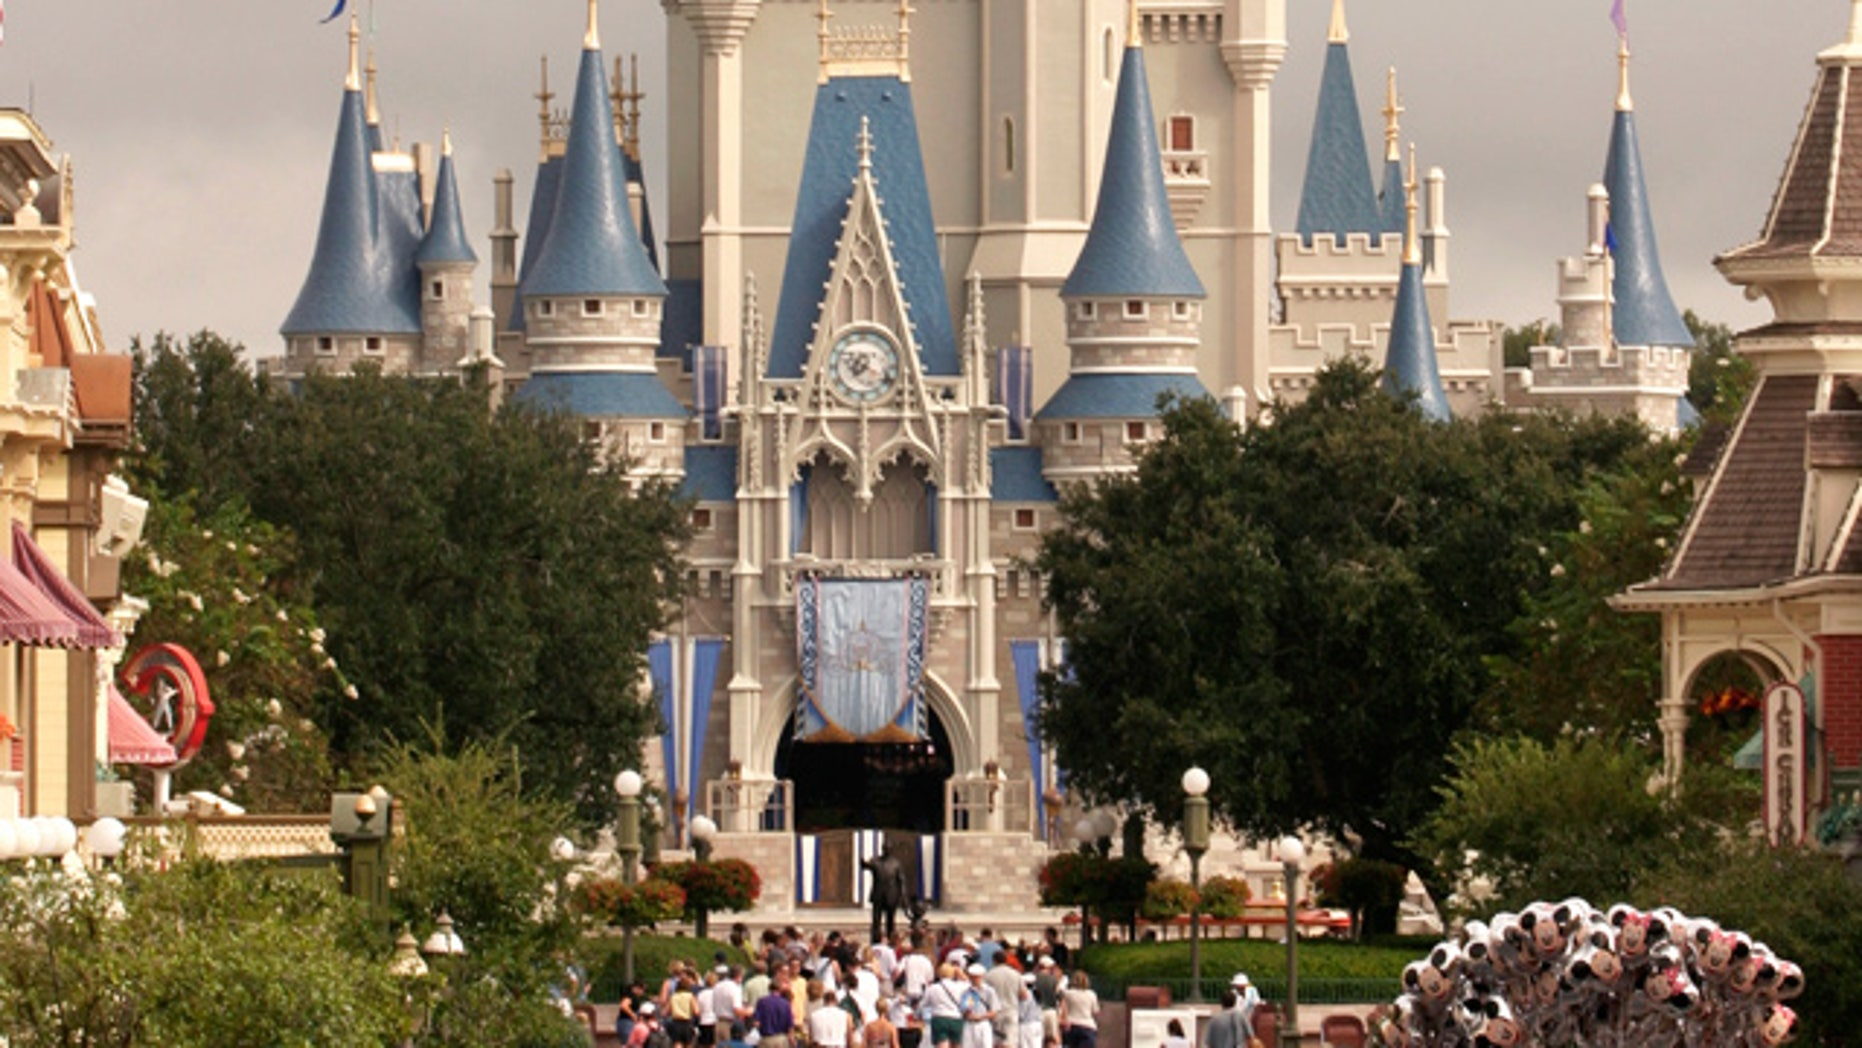 Some families reportedly have hired disabled people to allow them to be able to cut the line at Disney World.